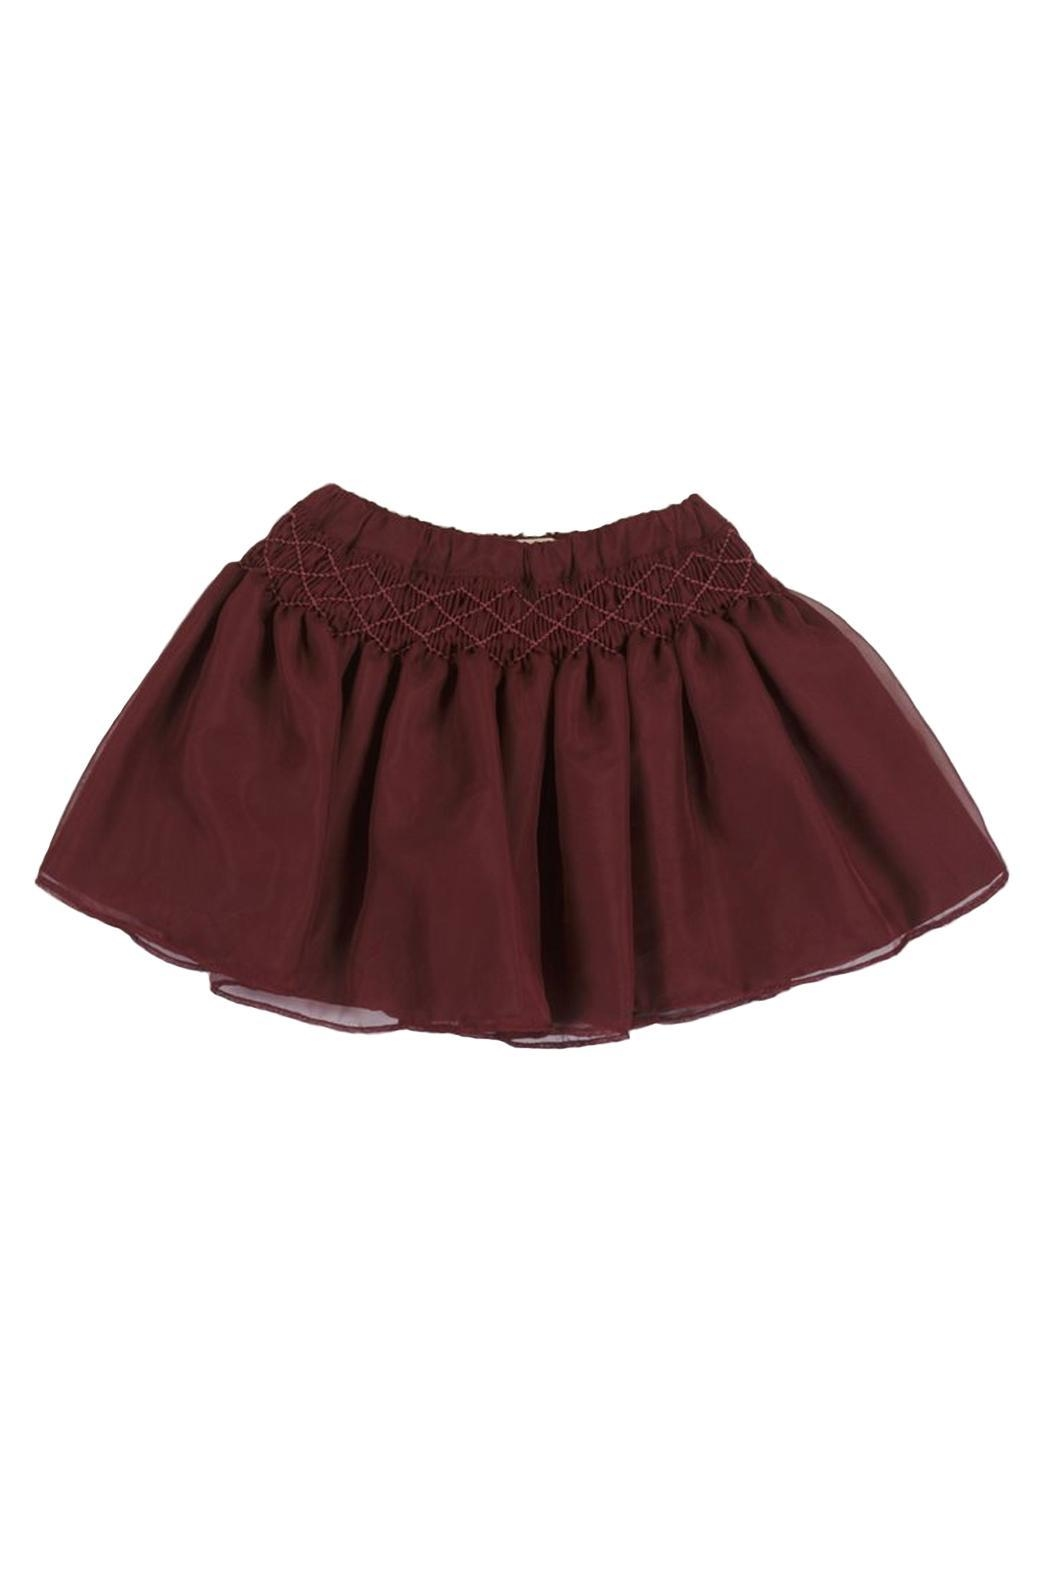 Malvi & Co. Burgundy Smocked Skirt. - Main Image